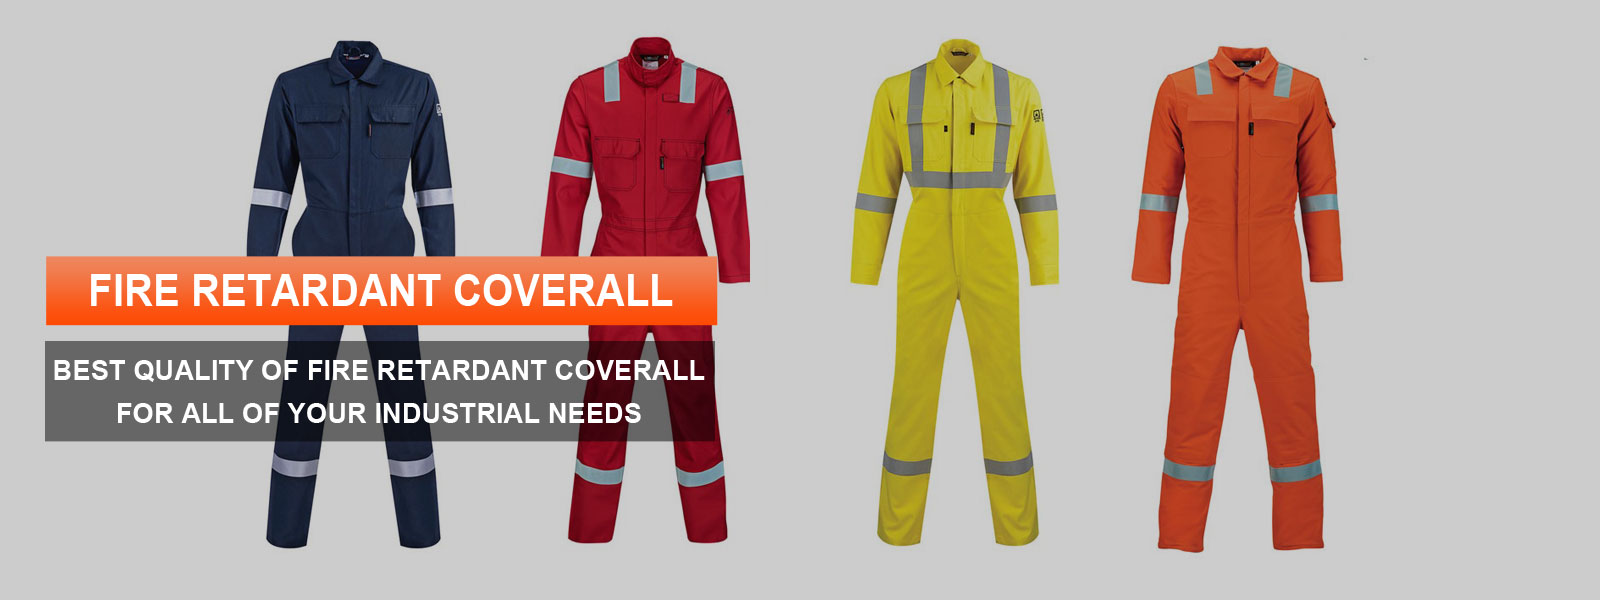 Fire Retardant Coverall Manufacturers in Malawi